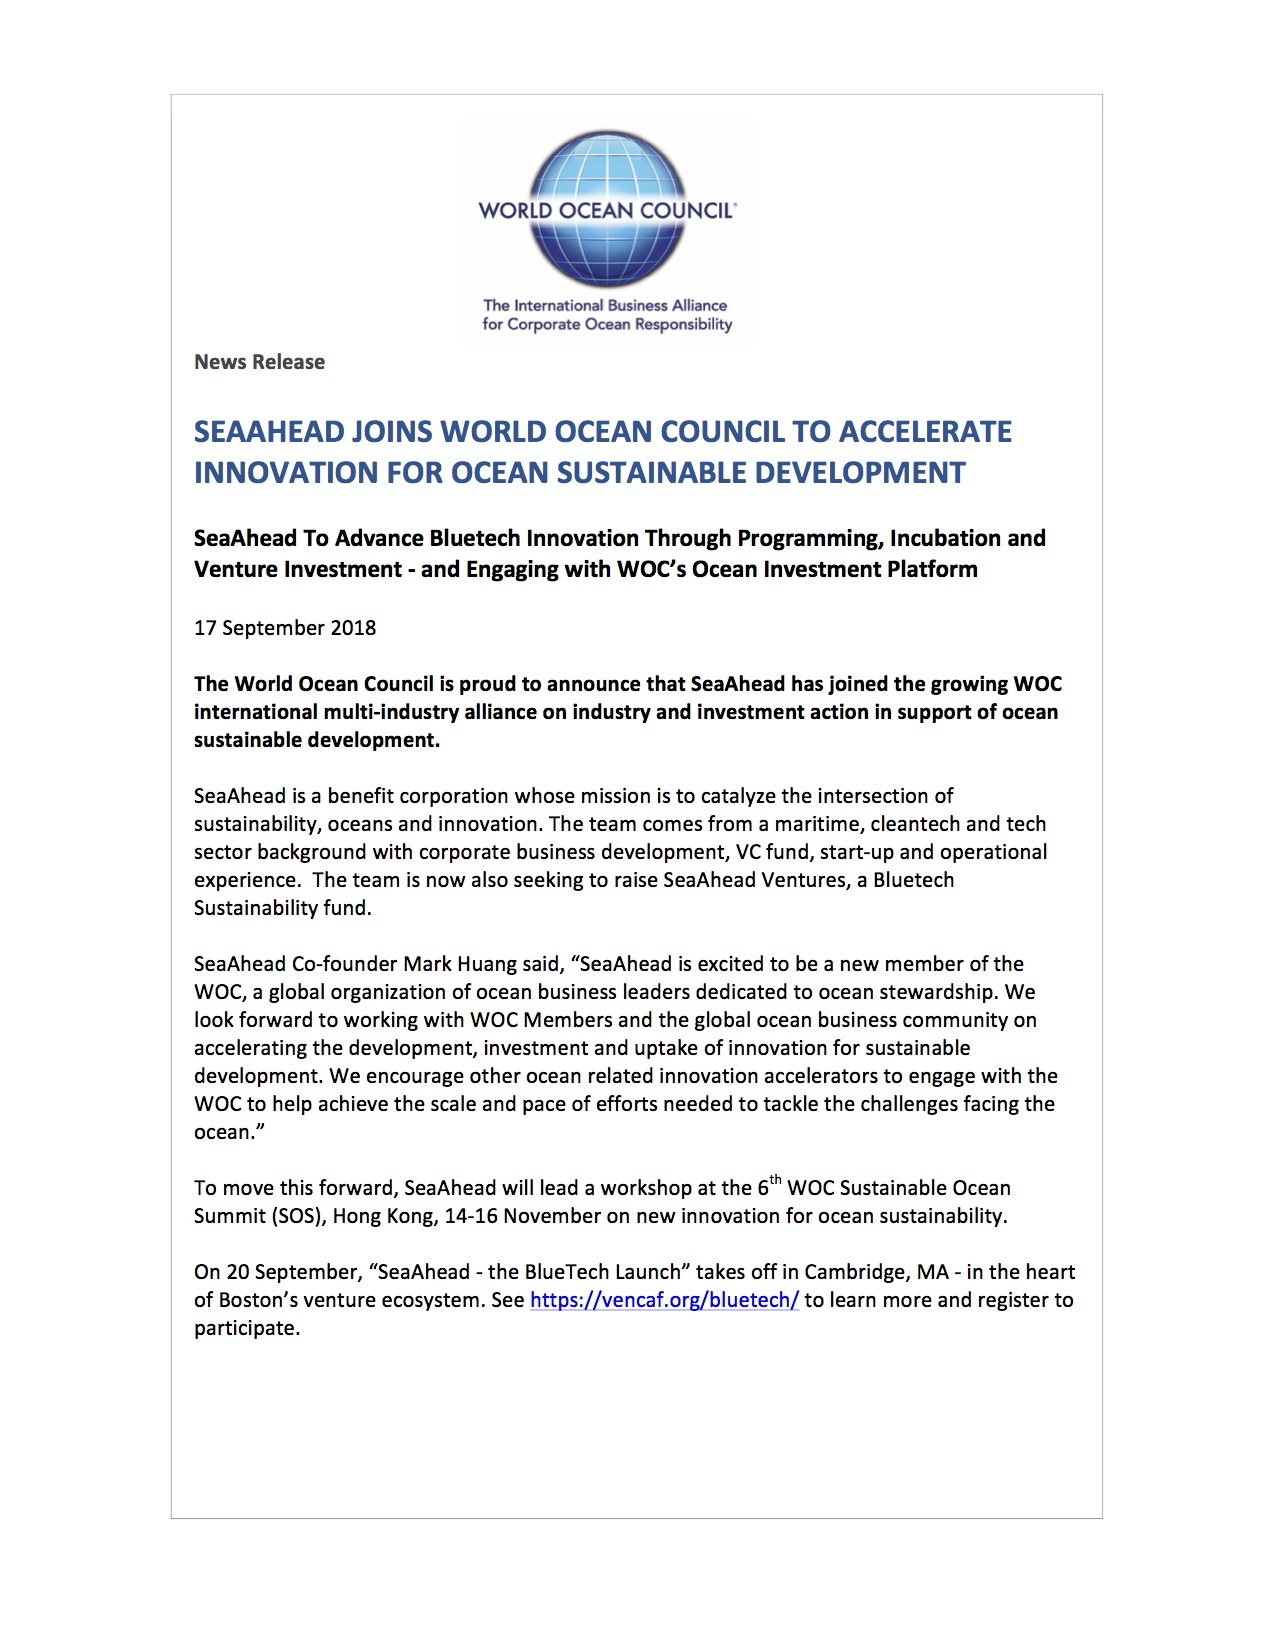 SeaAhead Joins World Ocean Council to Accelerate Innovation for Ocean Sustainable Development - 17 September 2018